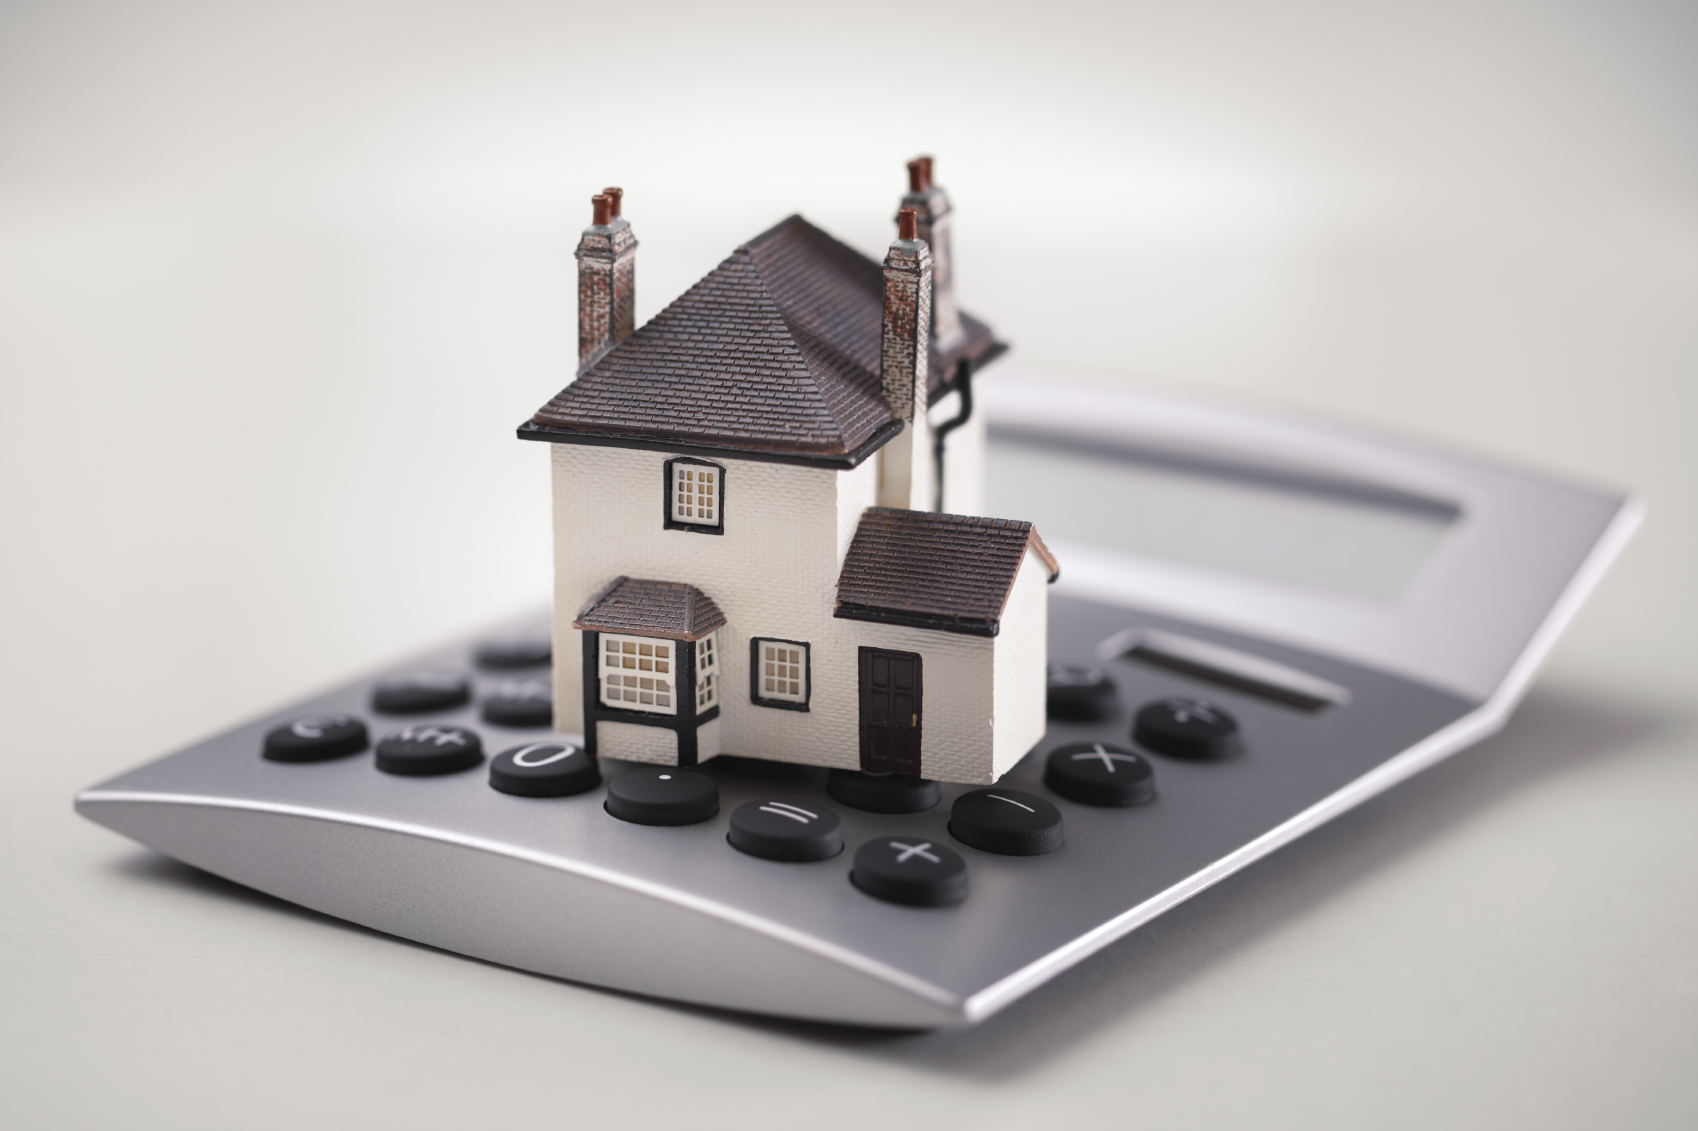 Picture of a toy house sitting on a calculator.